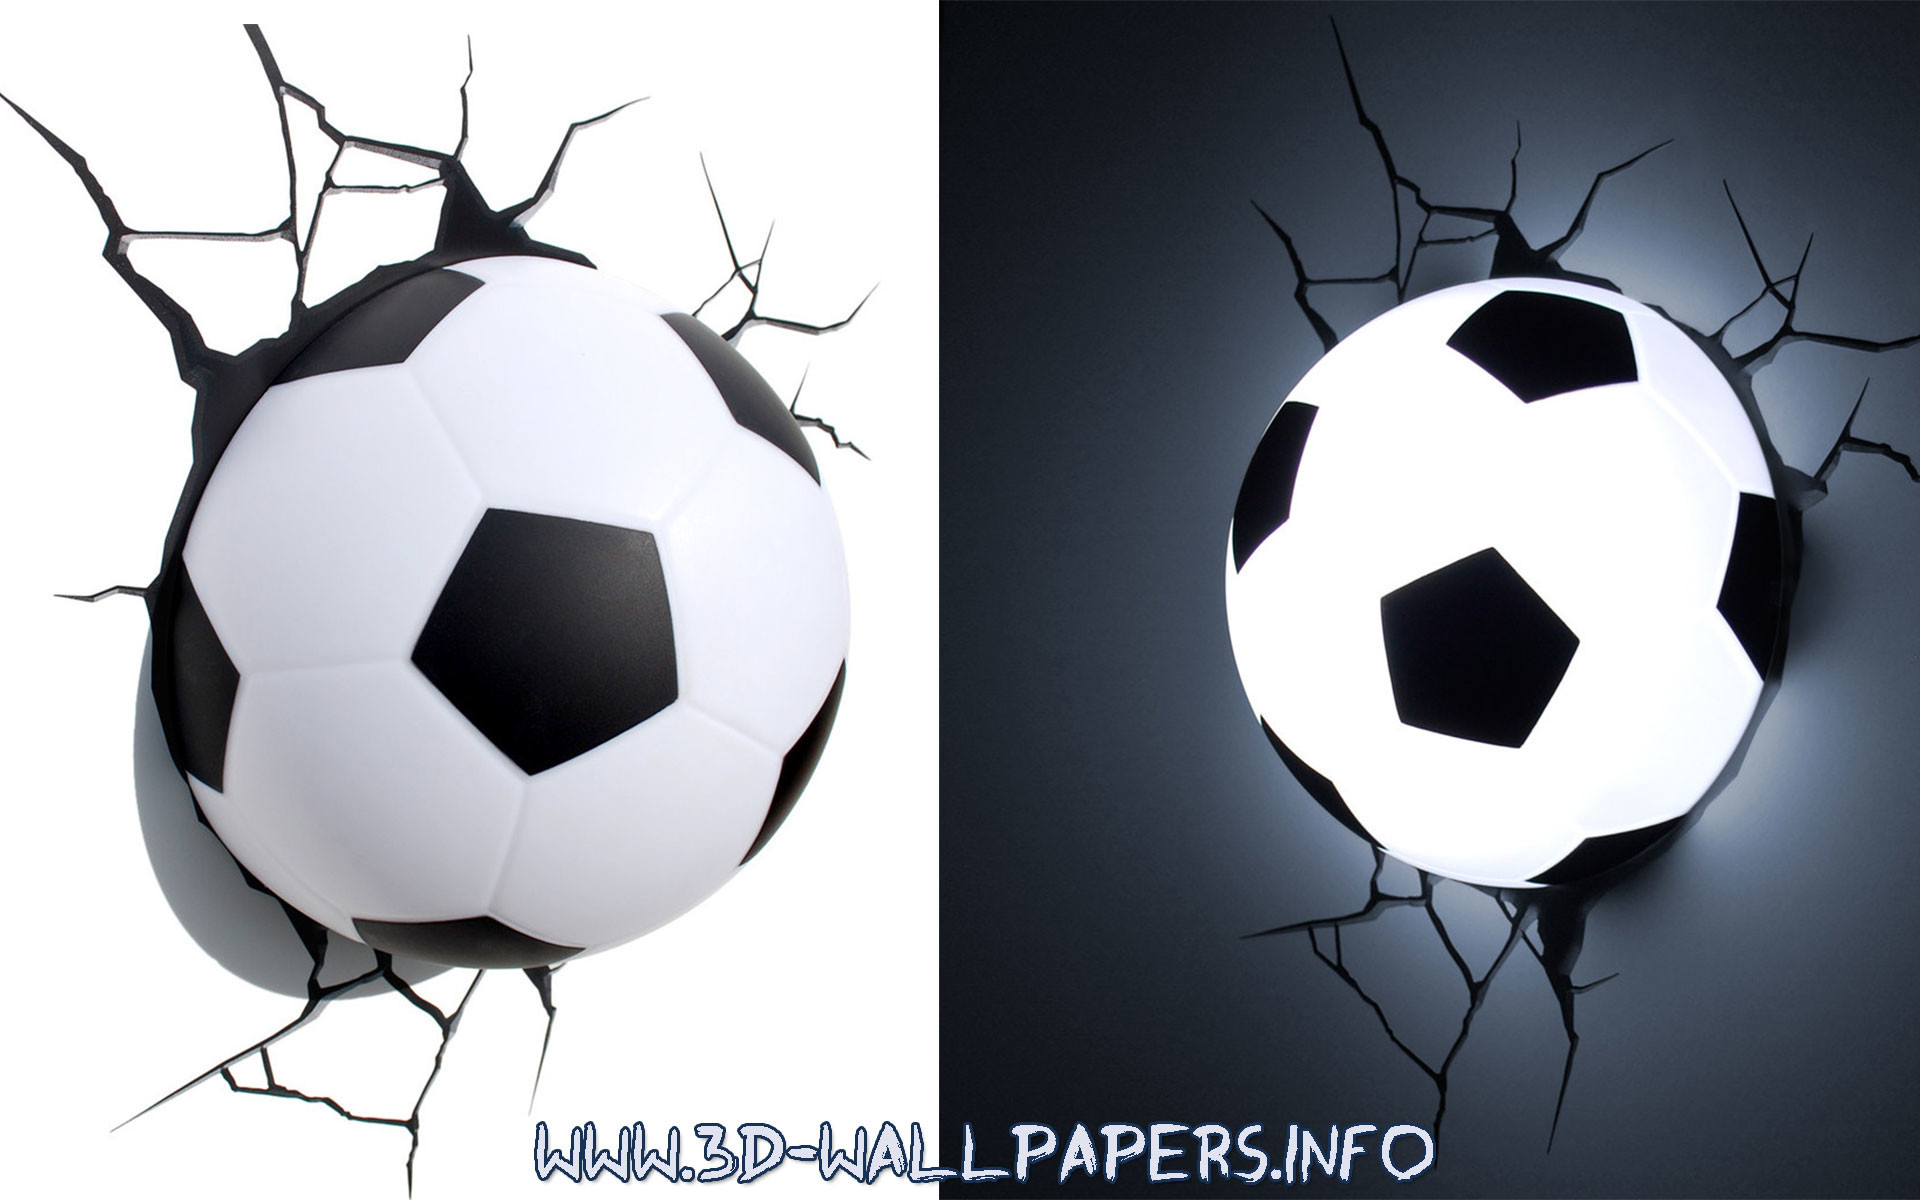 1920x1200 Soccer Ball 3D Deco Light